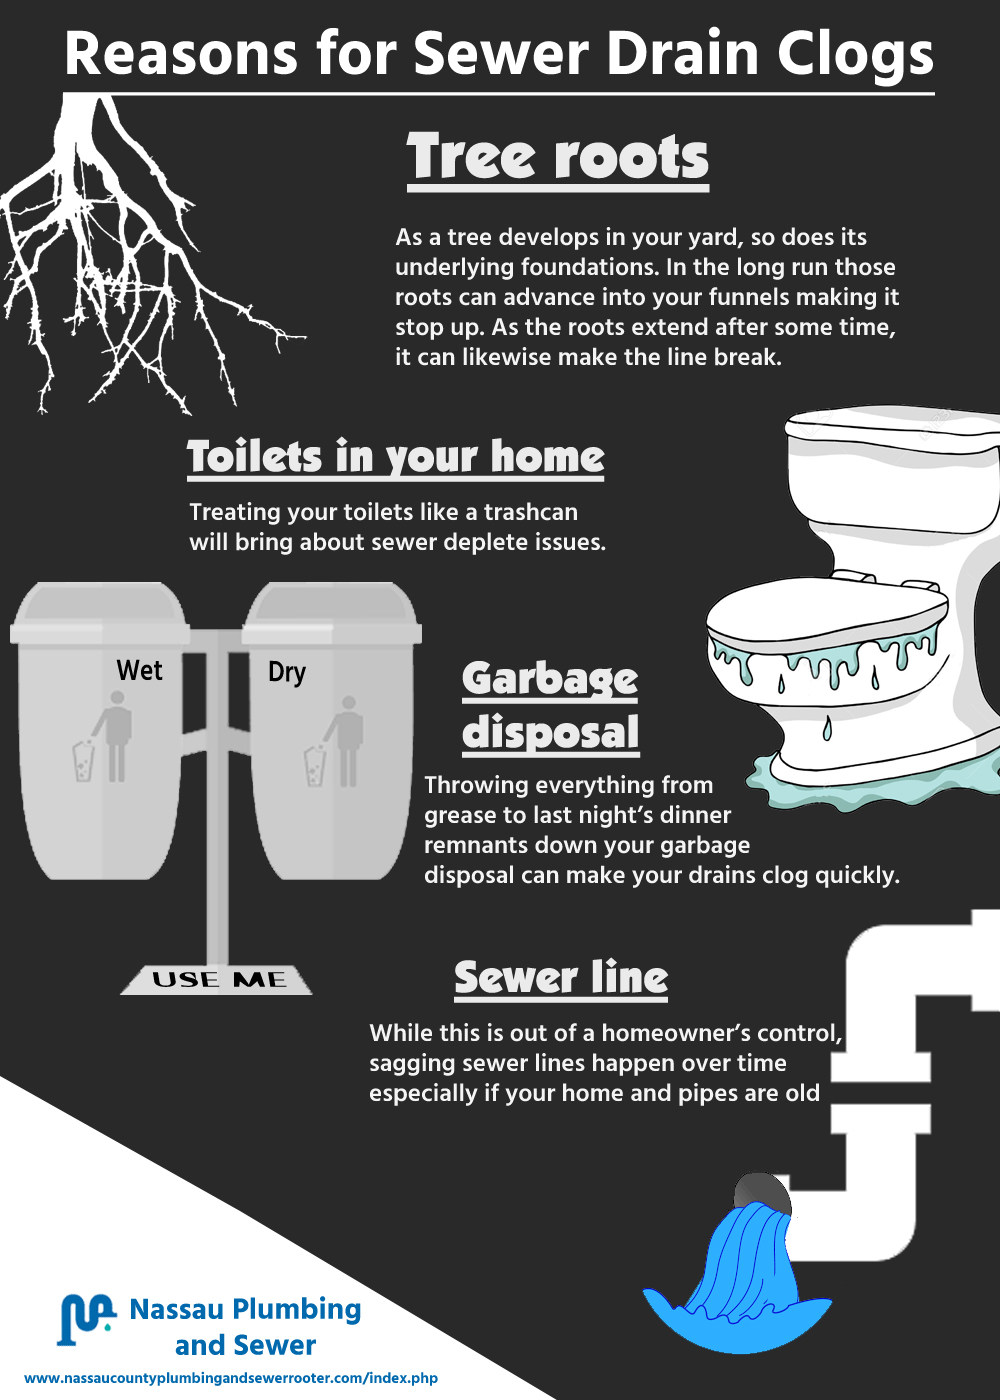 Reasons for sewer drain clogs infographic by for How to run a sewer line